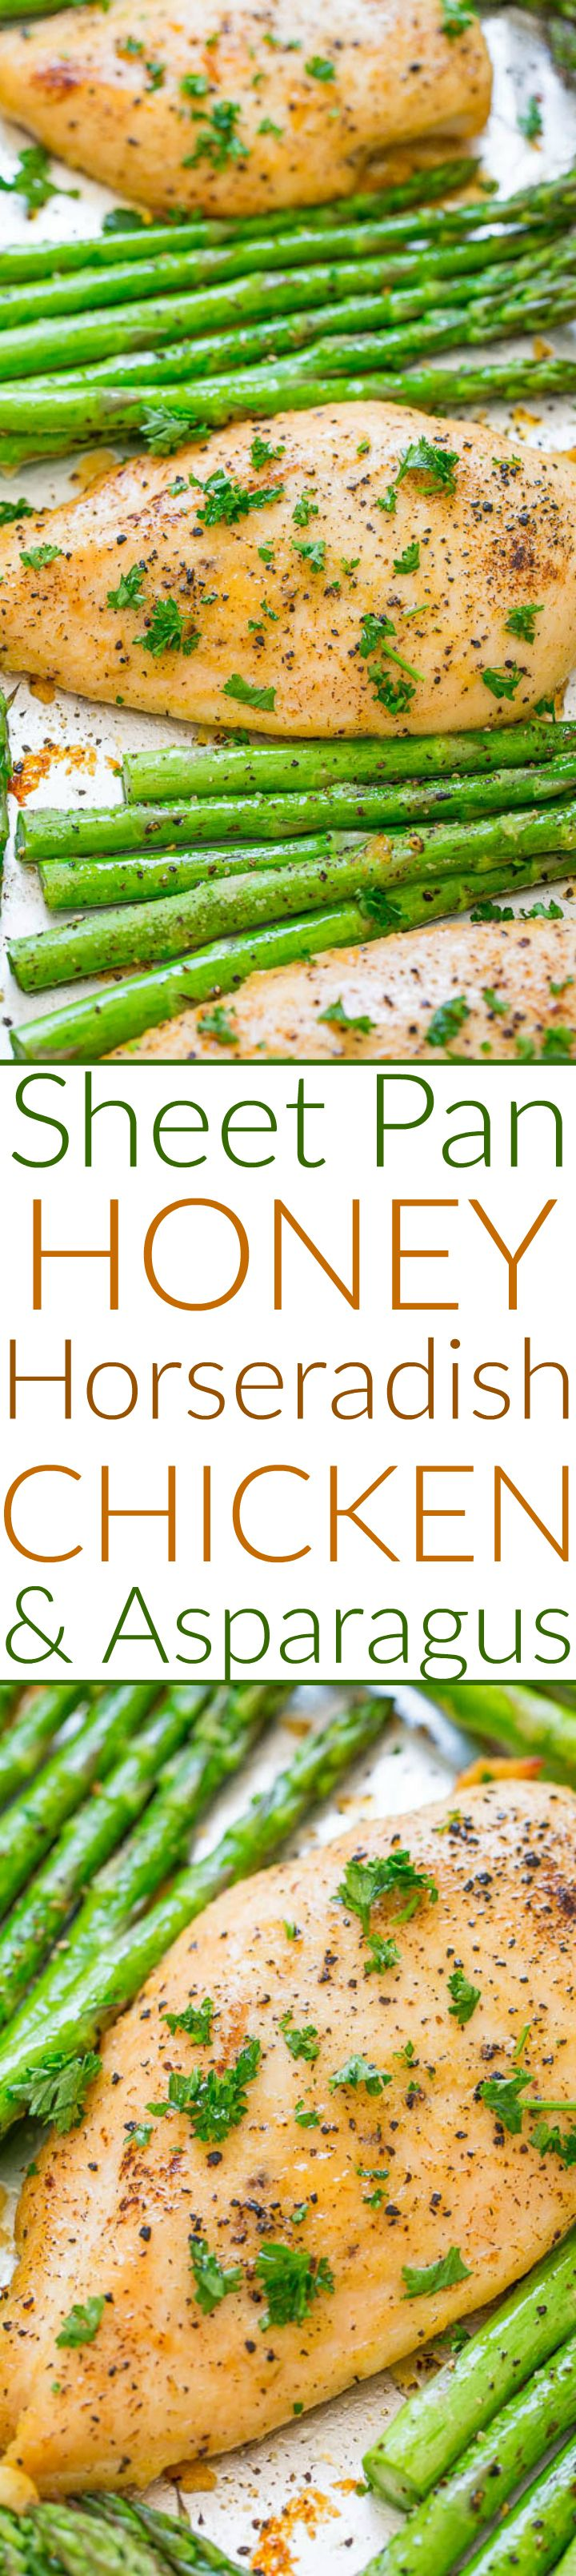 Sheet Pan Honey Horseradish Chicken and Asparagus - The perfect balance of sweet honey with spicy horseradish in this EASY, HEALTHY recipe that's ready in 30 minutes!! Juicy chicken with crisp-tender asparagus for the win!!